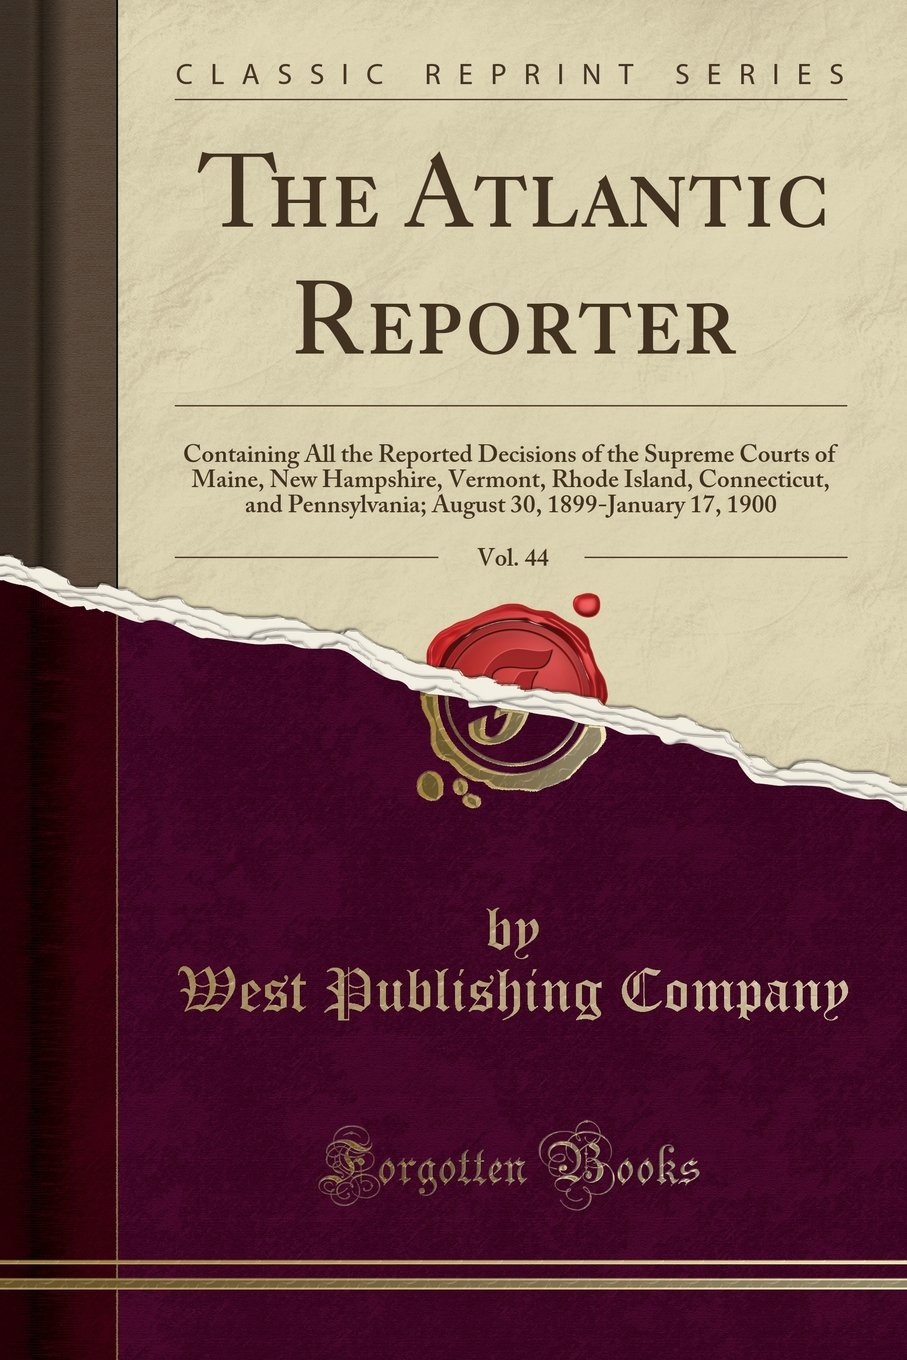 Read Online The Atlantic Reporter, Vol. 44: Containing All the Reported Decisions of the Supreme Courts of Maine, New Hampshire, Vermont, Rhode Island, ... 30, 1899-January 17, 1900 (Classic Reprint) ebook